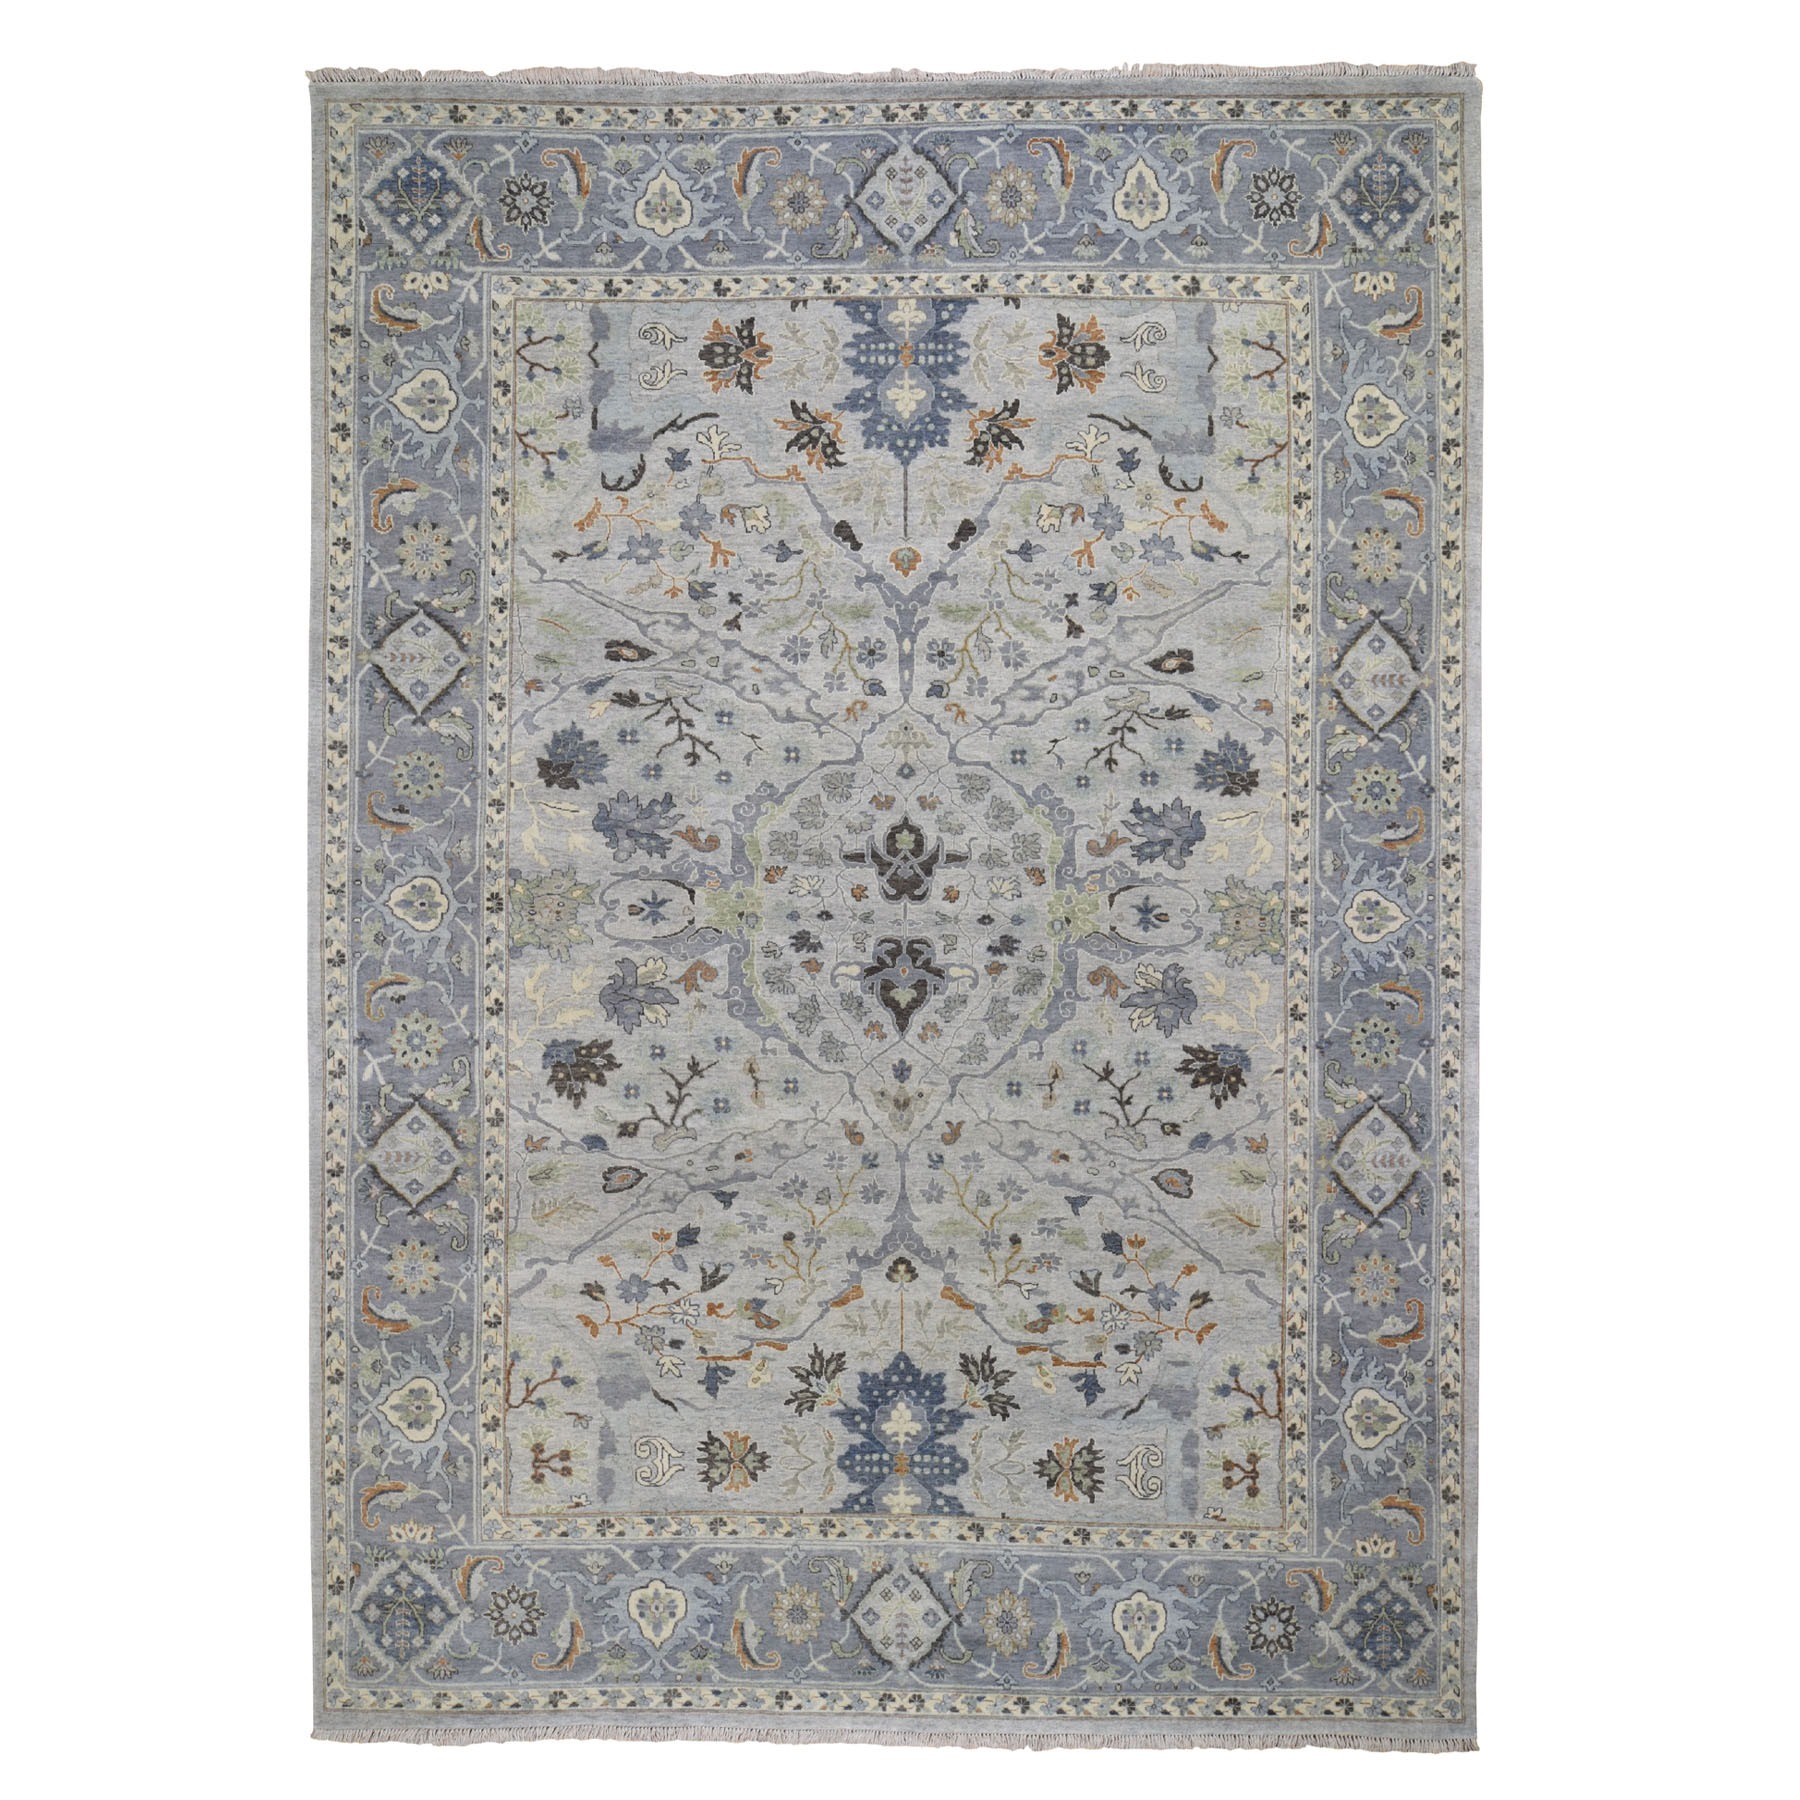 "8'9""X12' Gray Oushak Inspired 100% Hand Spun New Zealand Wool Vegetable Dyes Hand Knotted Oriental Rug moad8bdc"